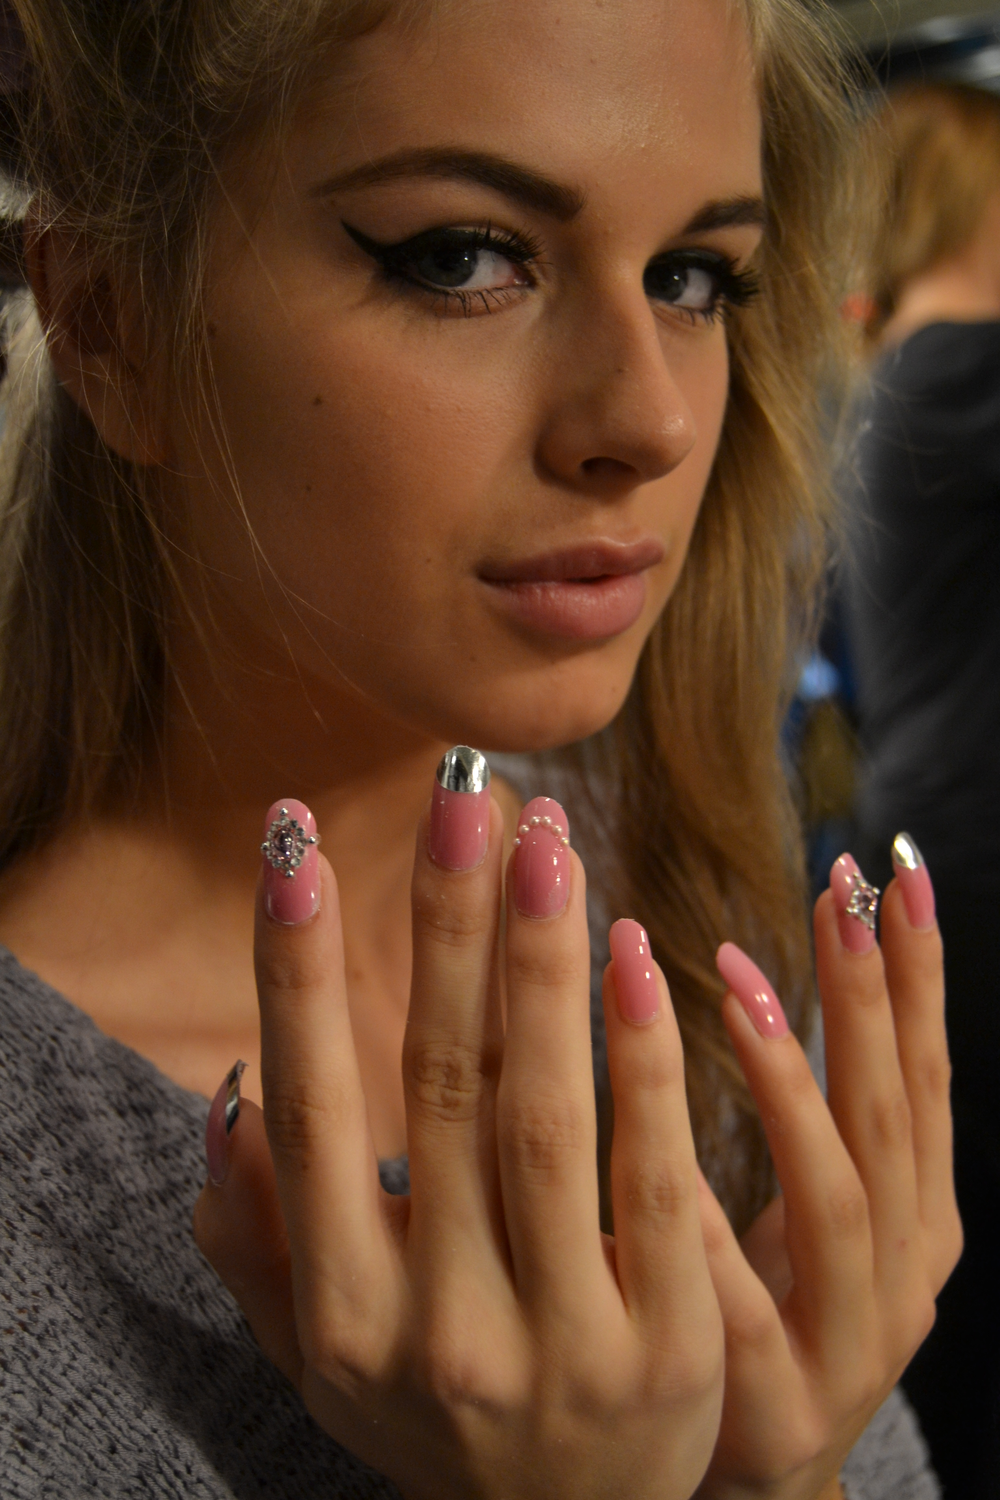 <p>Embellished <strong>Minx</strong> nails appeared at Ida Sjostedt&rsquo;s glamorous show in Sweden. <em>Photography by Natalie Ahlberg</em></p>